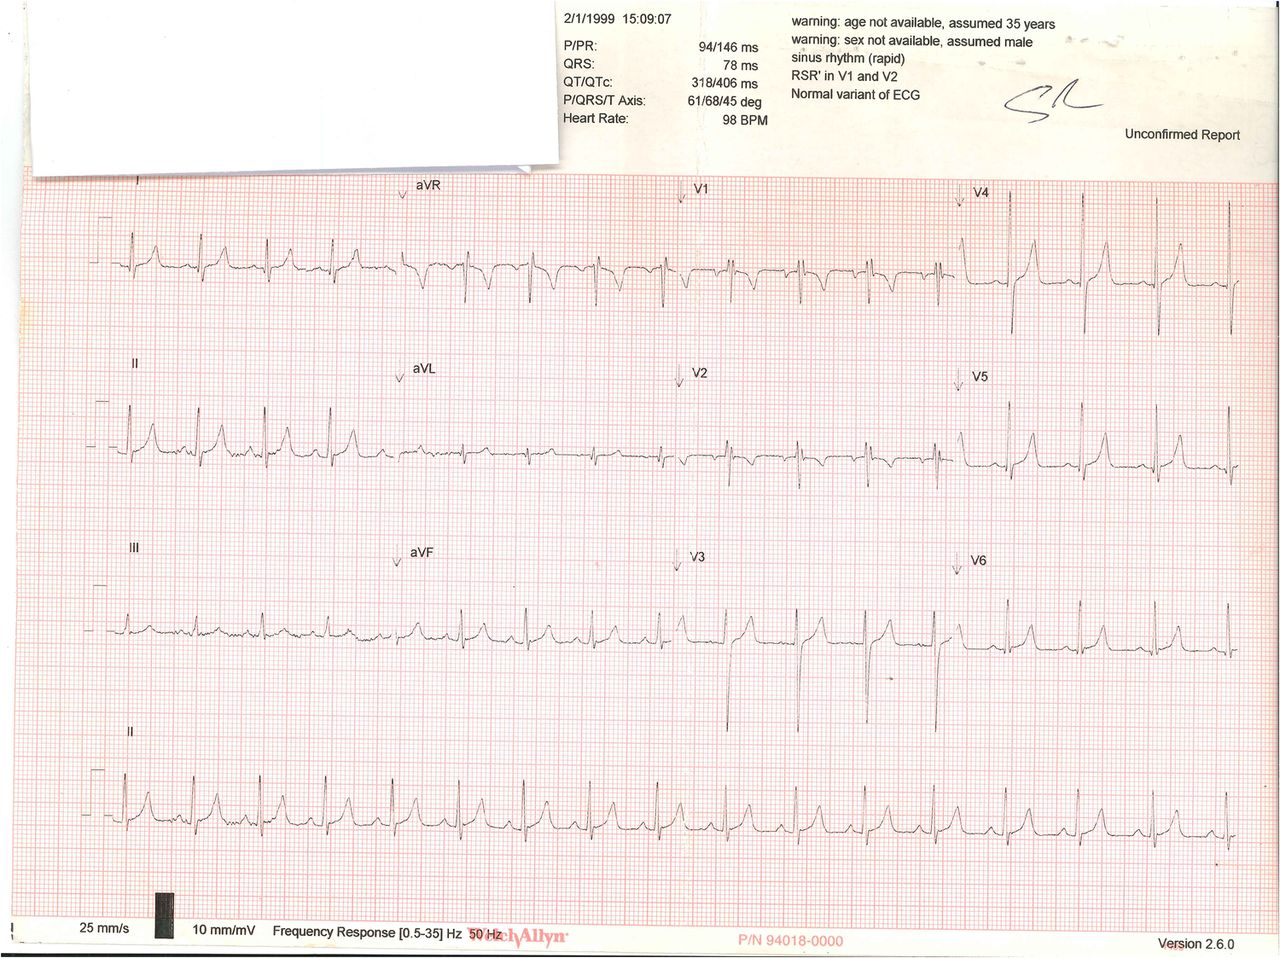 Cardioversion of a supraventricular tachycardia (SVT) in a 7